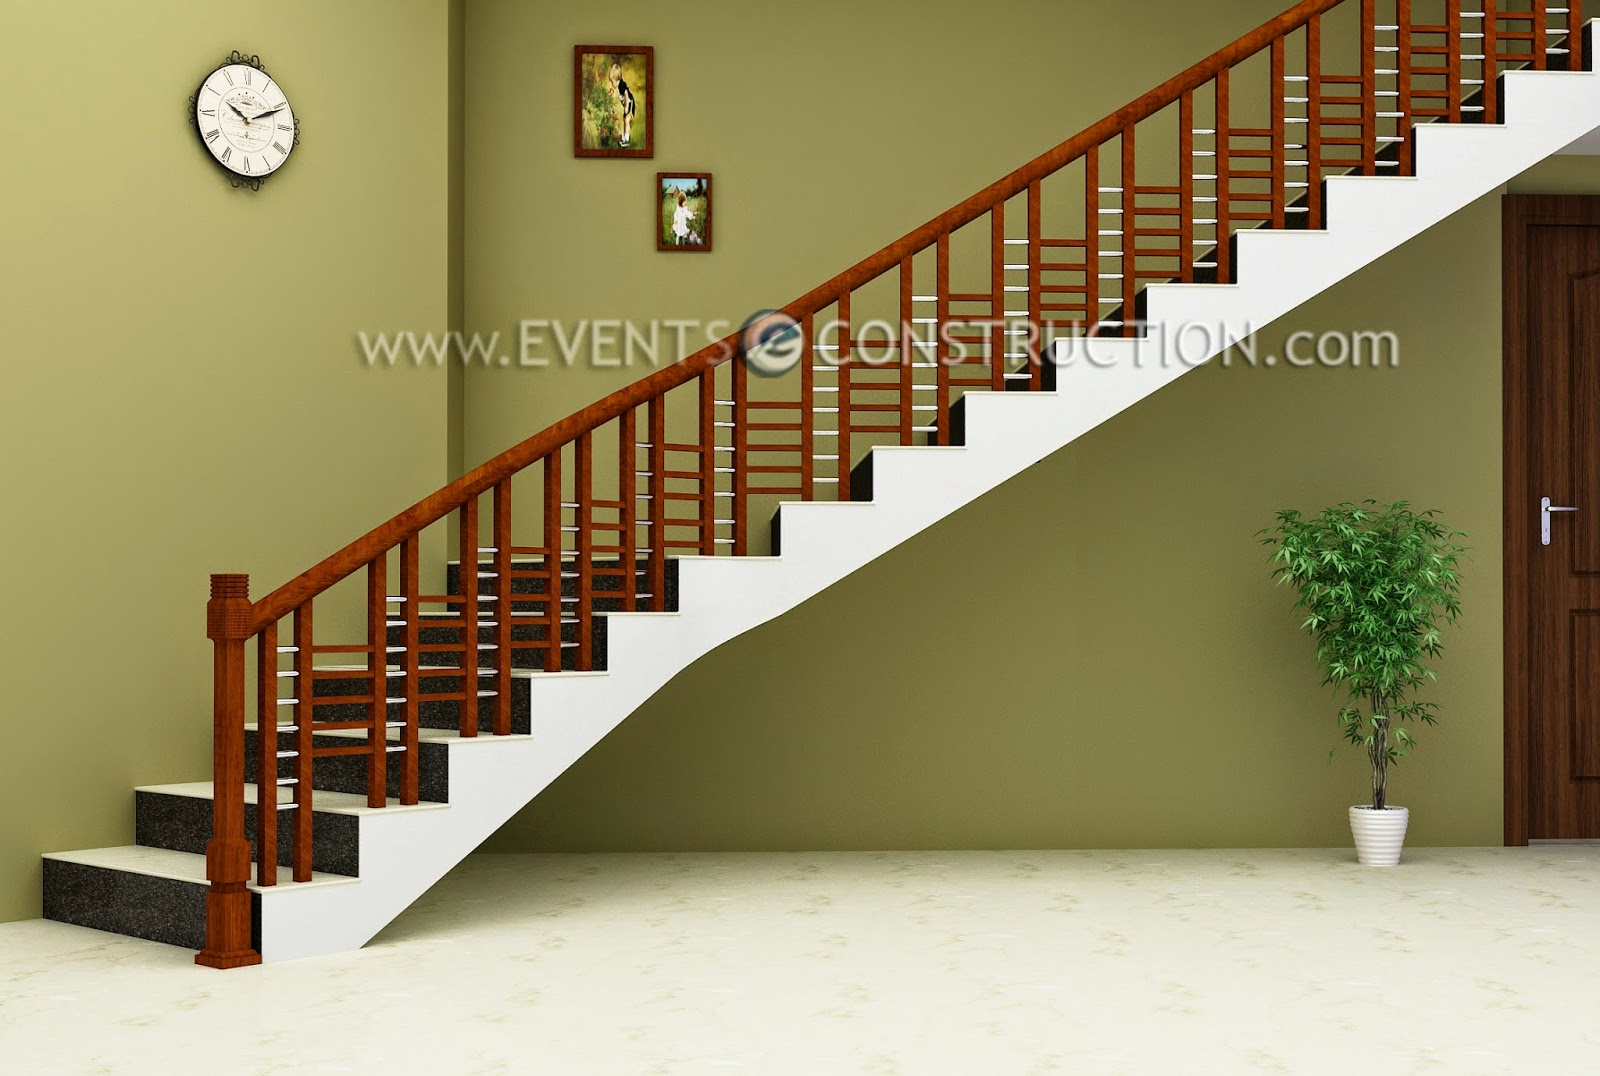 Evens construction pvt ltd simple wooden staircase design - Stairs in a small space model ...